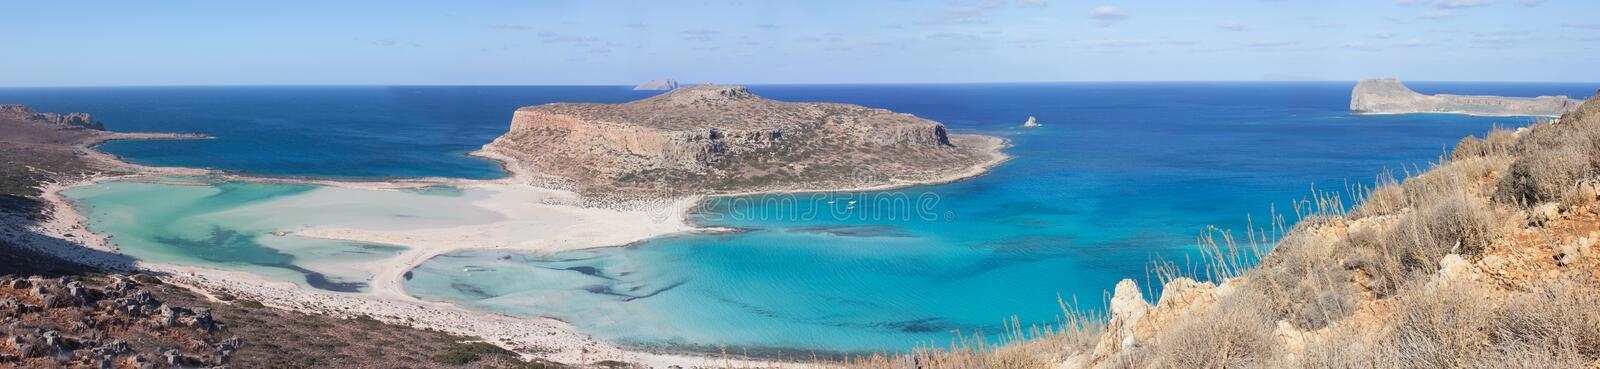 Balos beach Crete. Panoramic view of Balos beach, Greece, Crete royalty free stock image